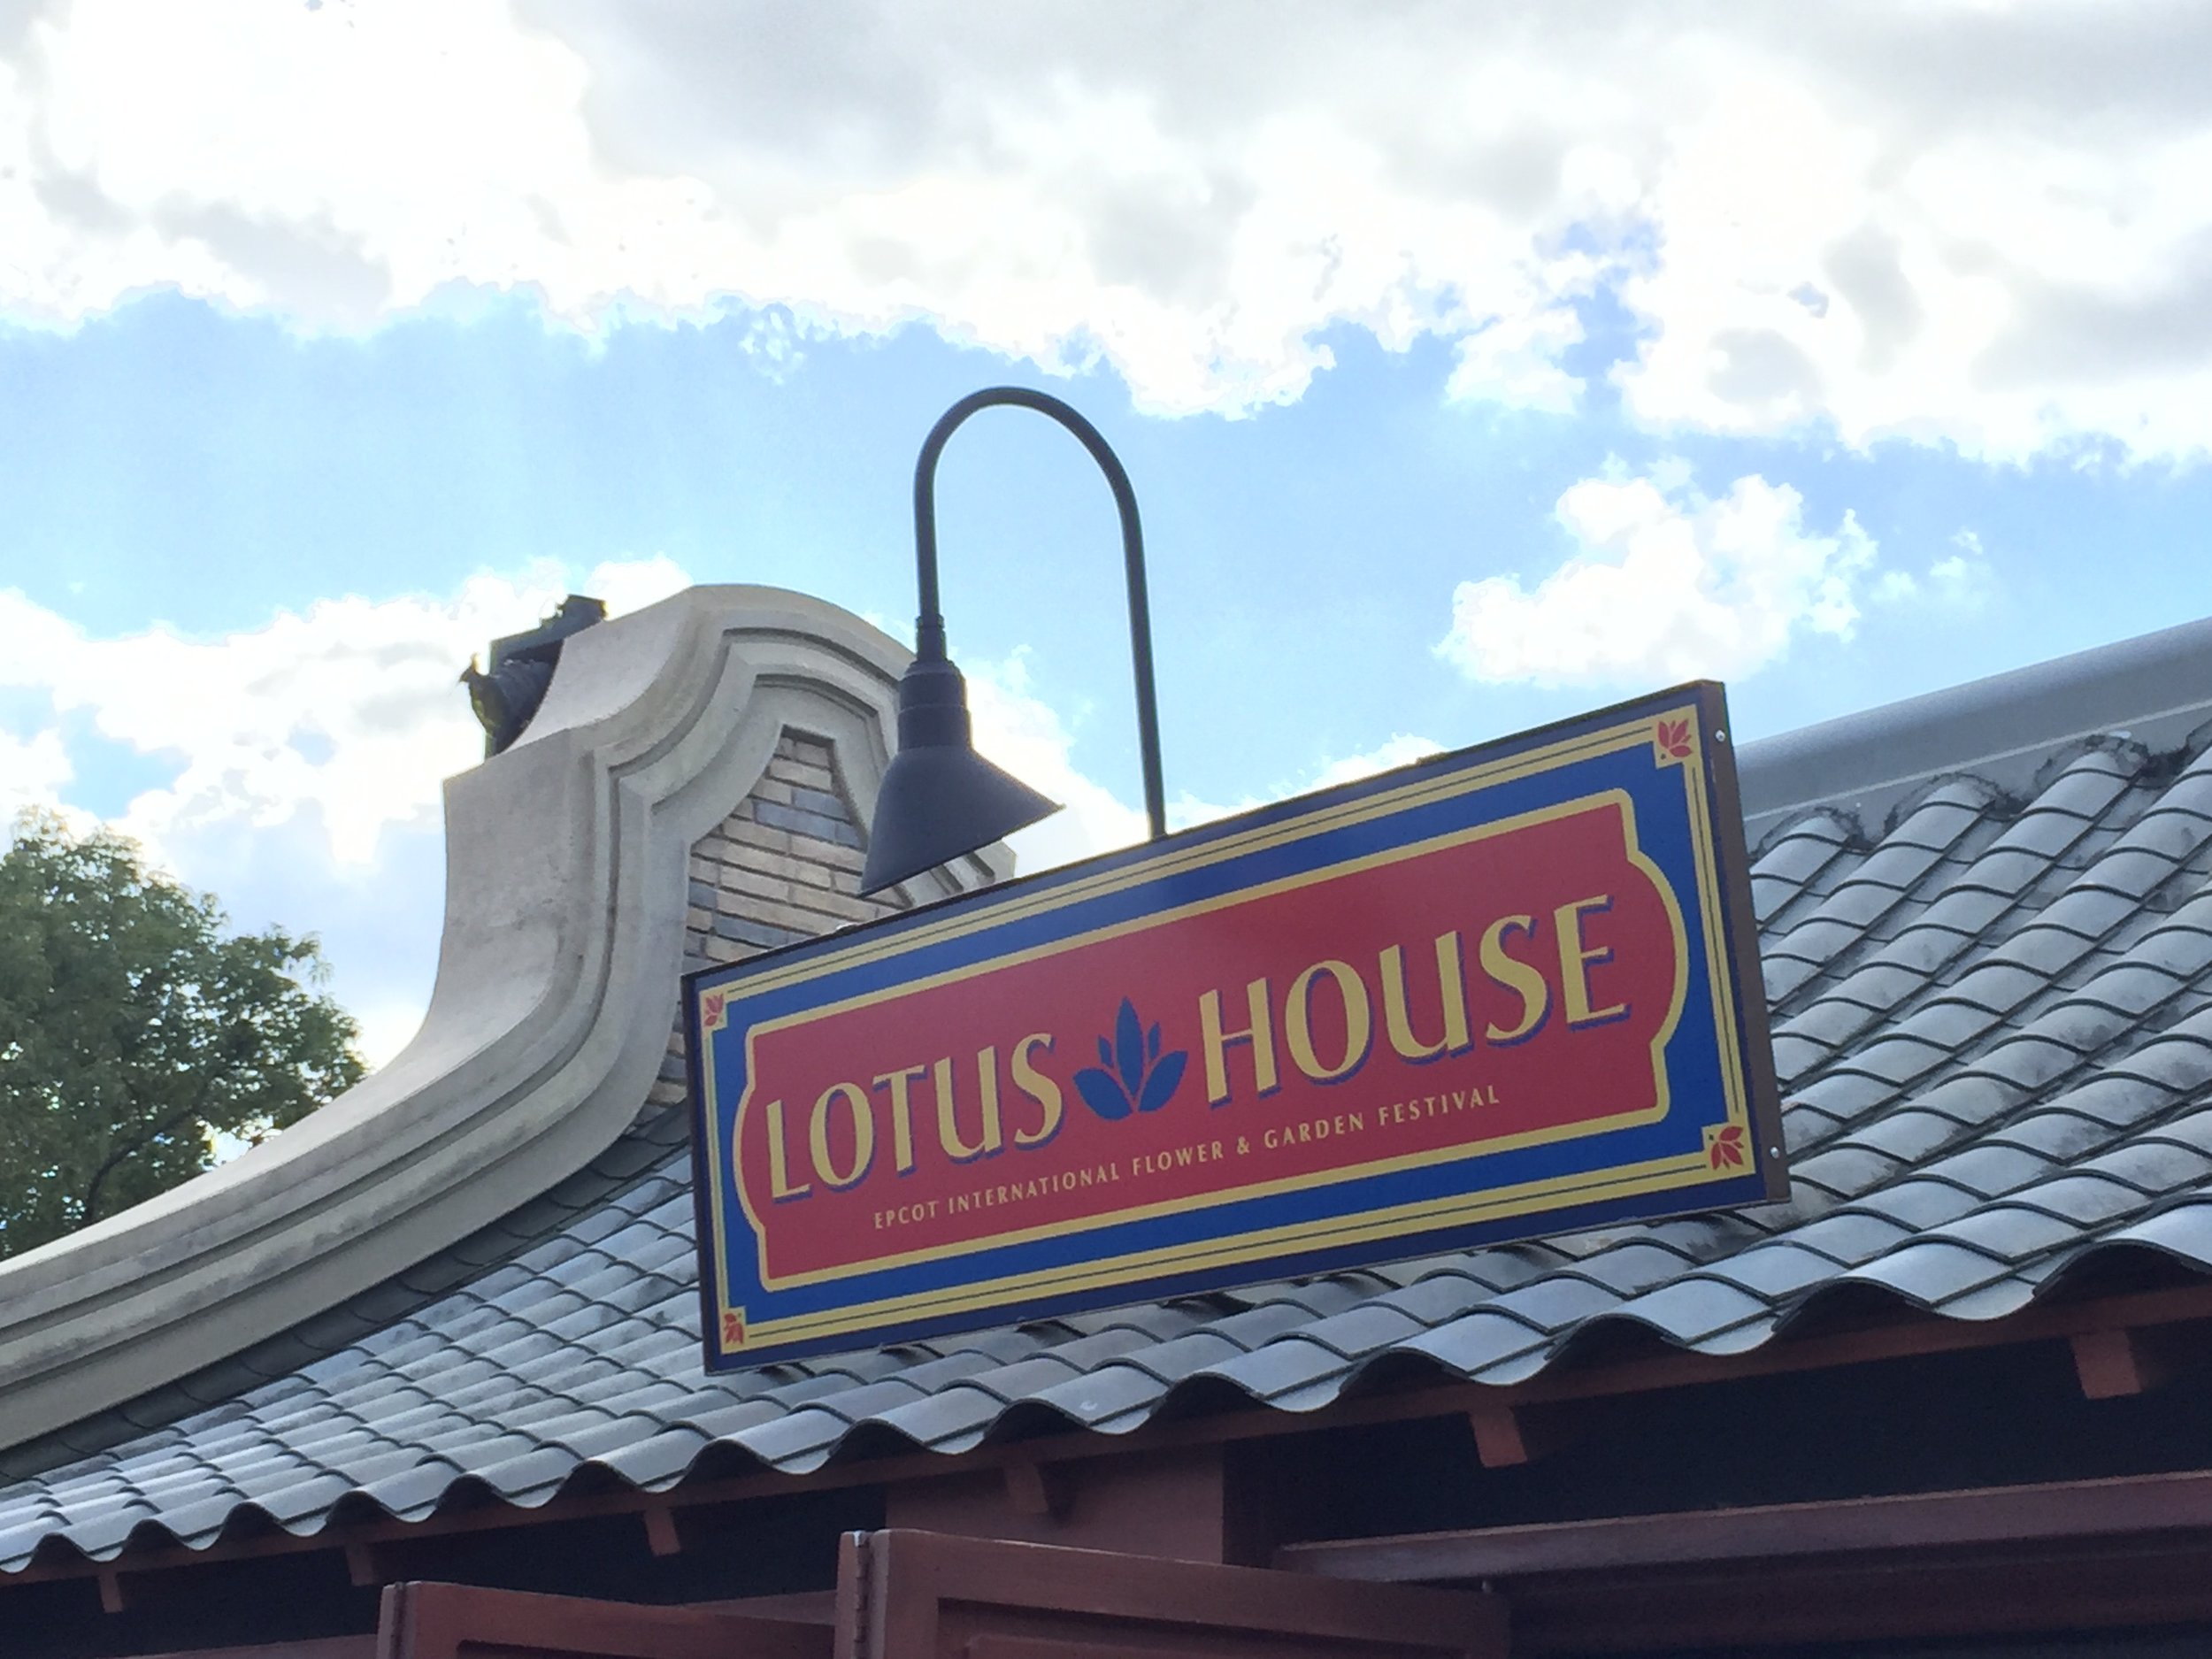 Lotus House is located in the China Pavilion.